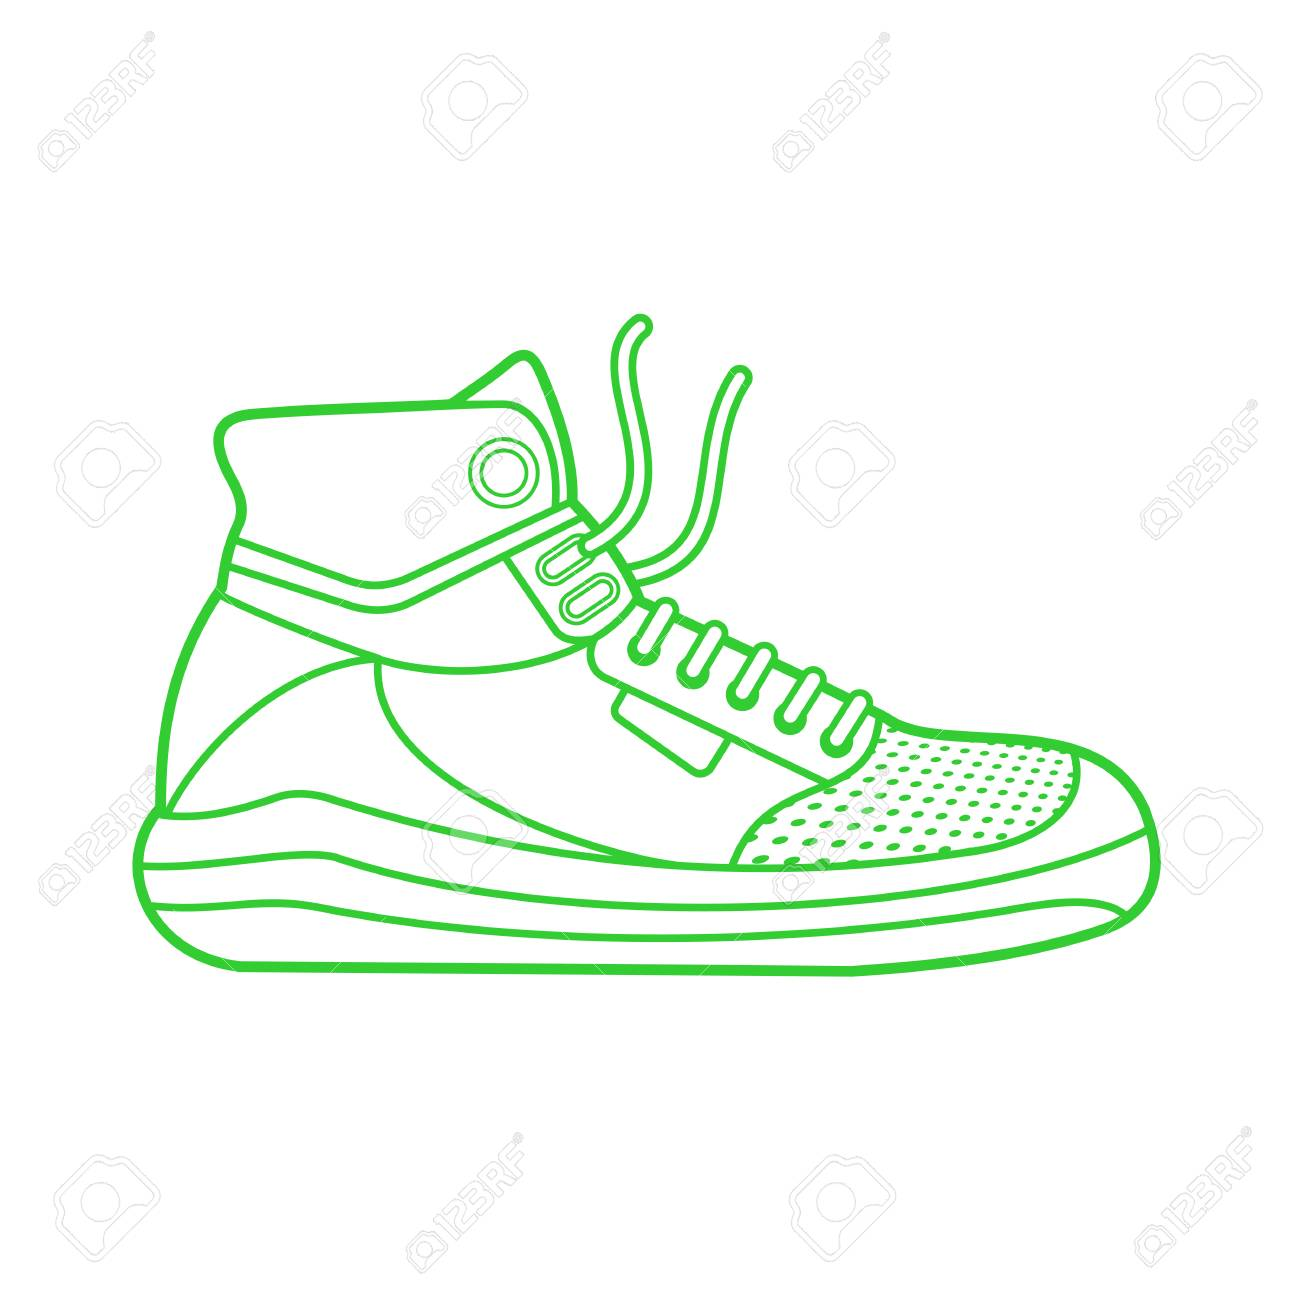 b4a7df21ceffc2 73029472-vector-illustration-of-sneakers-sports-shoes -in-a-line-style-advertisements-brochures-business-templ.jpg